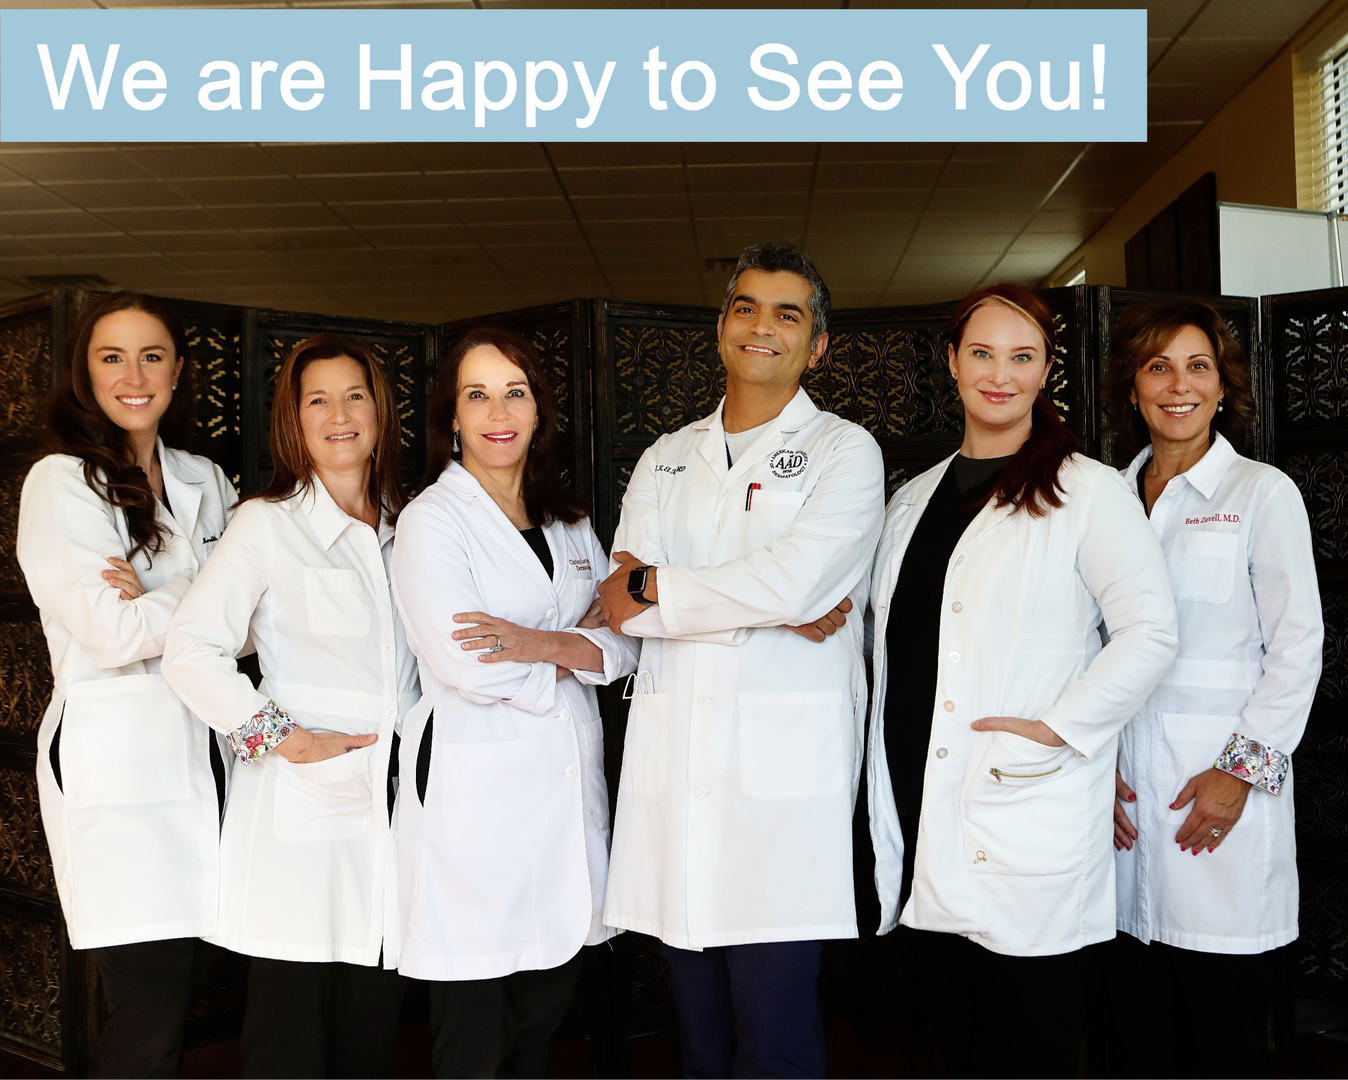 Our Team of Dermatologists